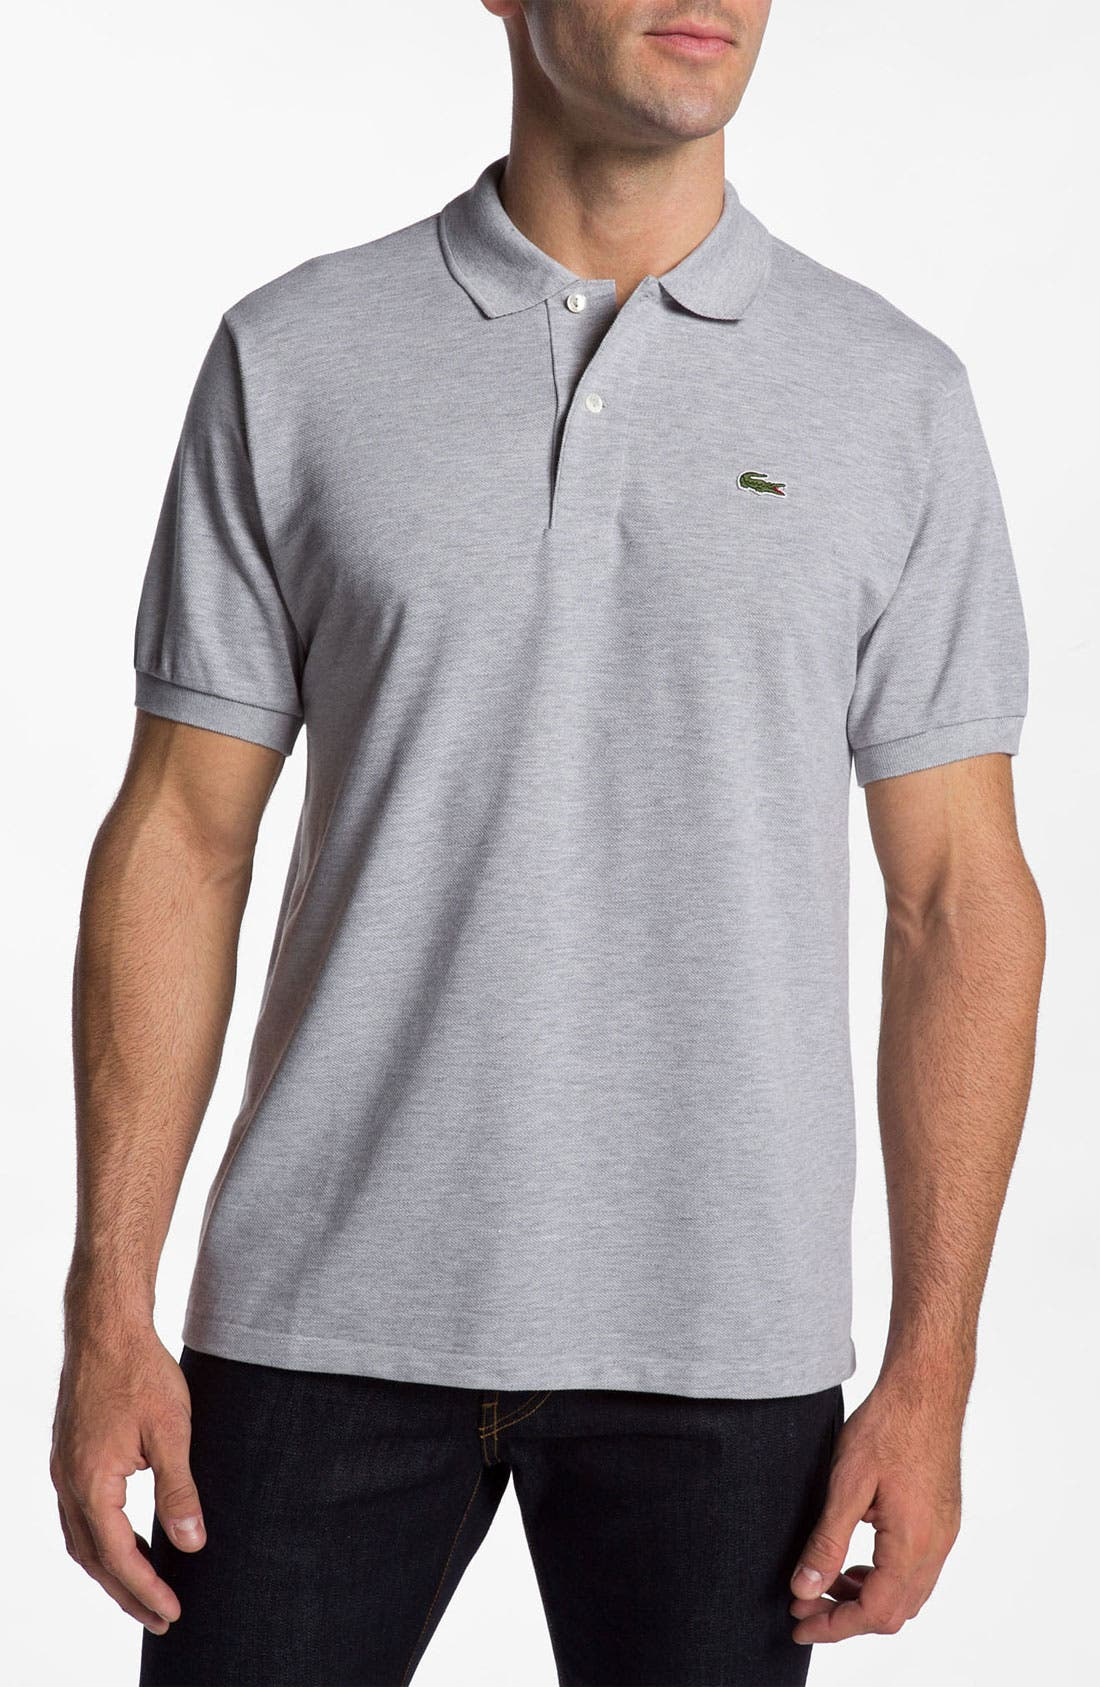 Main Image - Lacoste 'Chine' Piqué Polo